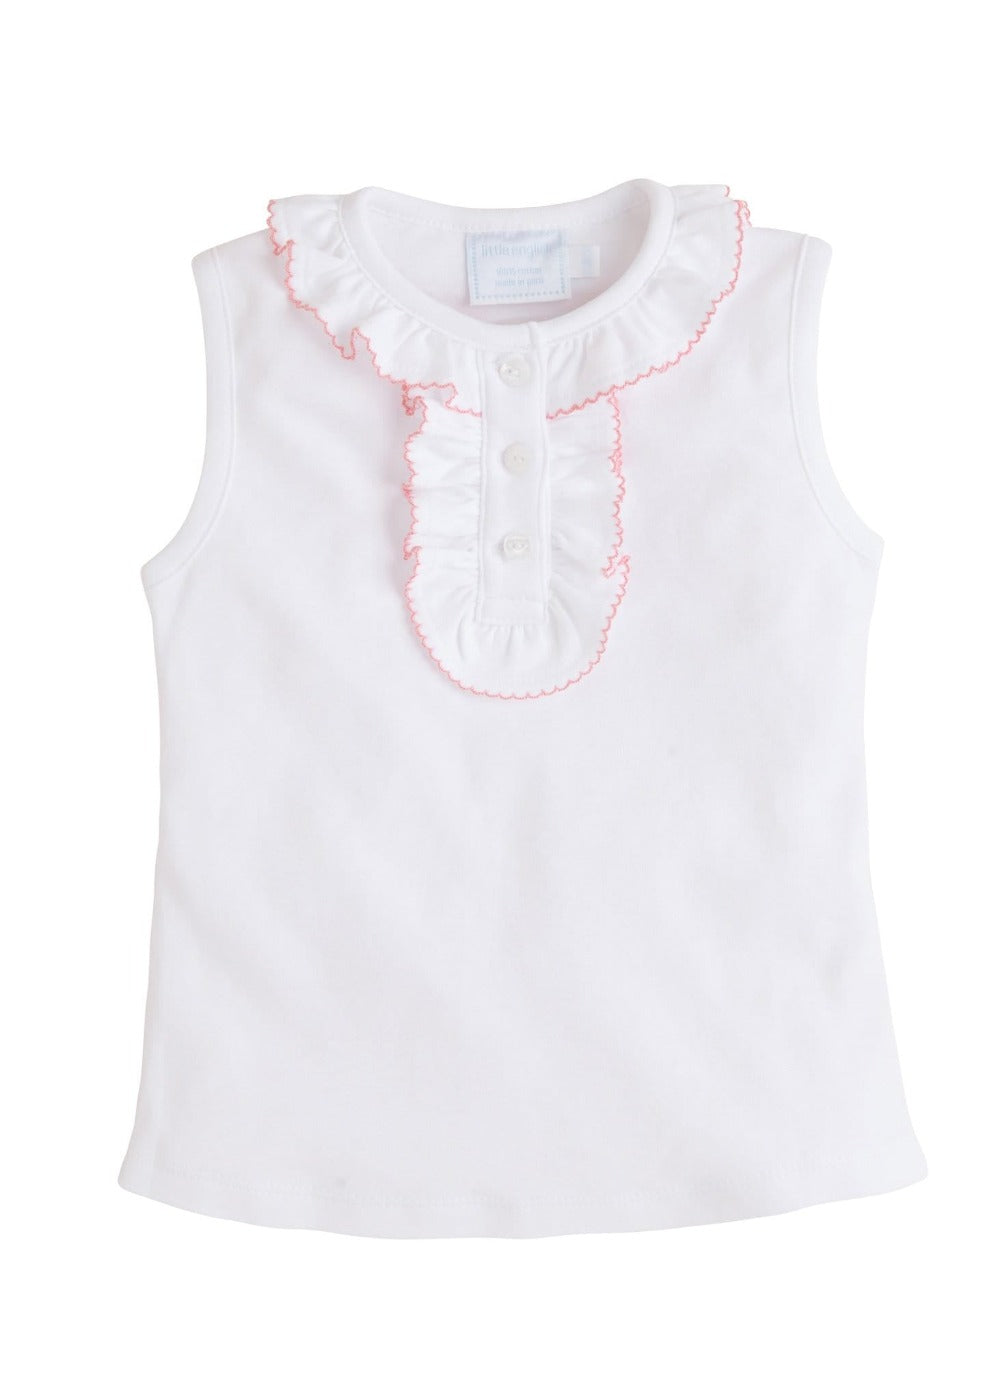 Ruffled Henley - Light Pink, Little English, classic children's clothing, preppy children's clothing, traditional children's clothing, classic baby clothing, traditional baby clothing